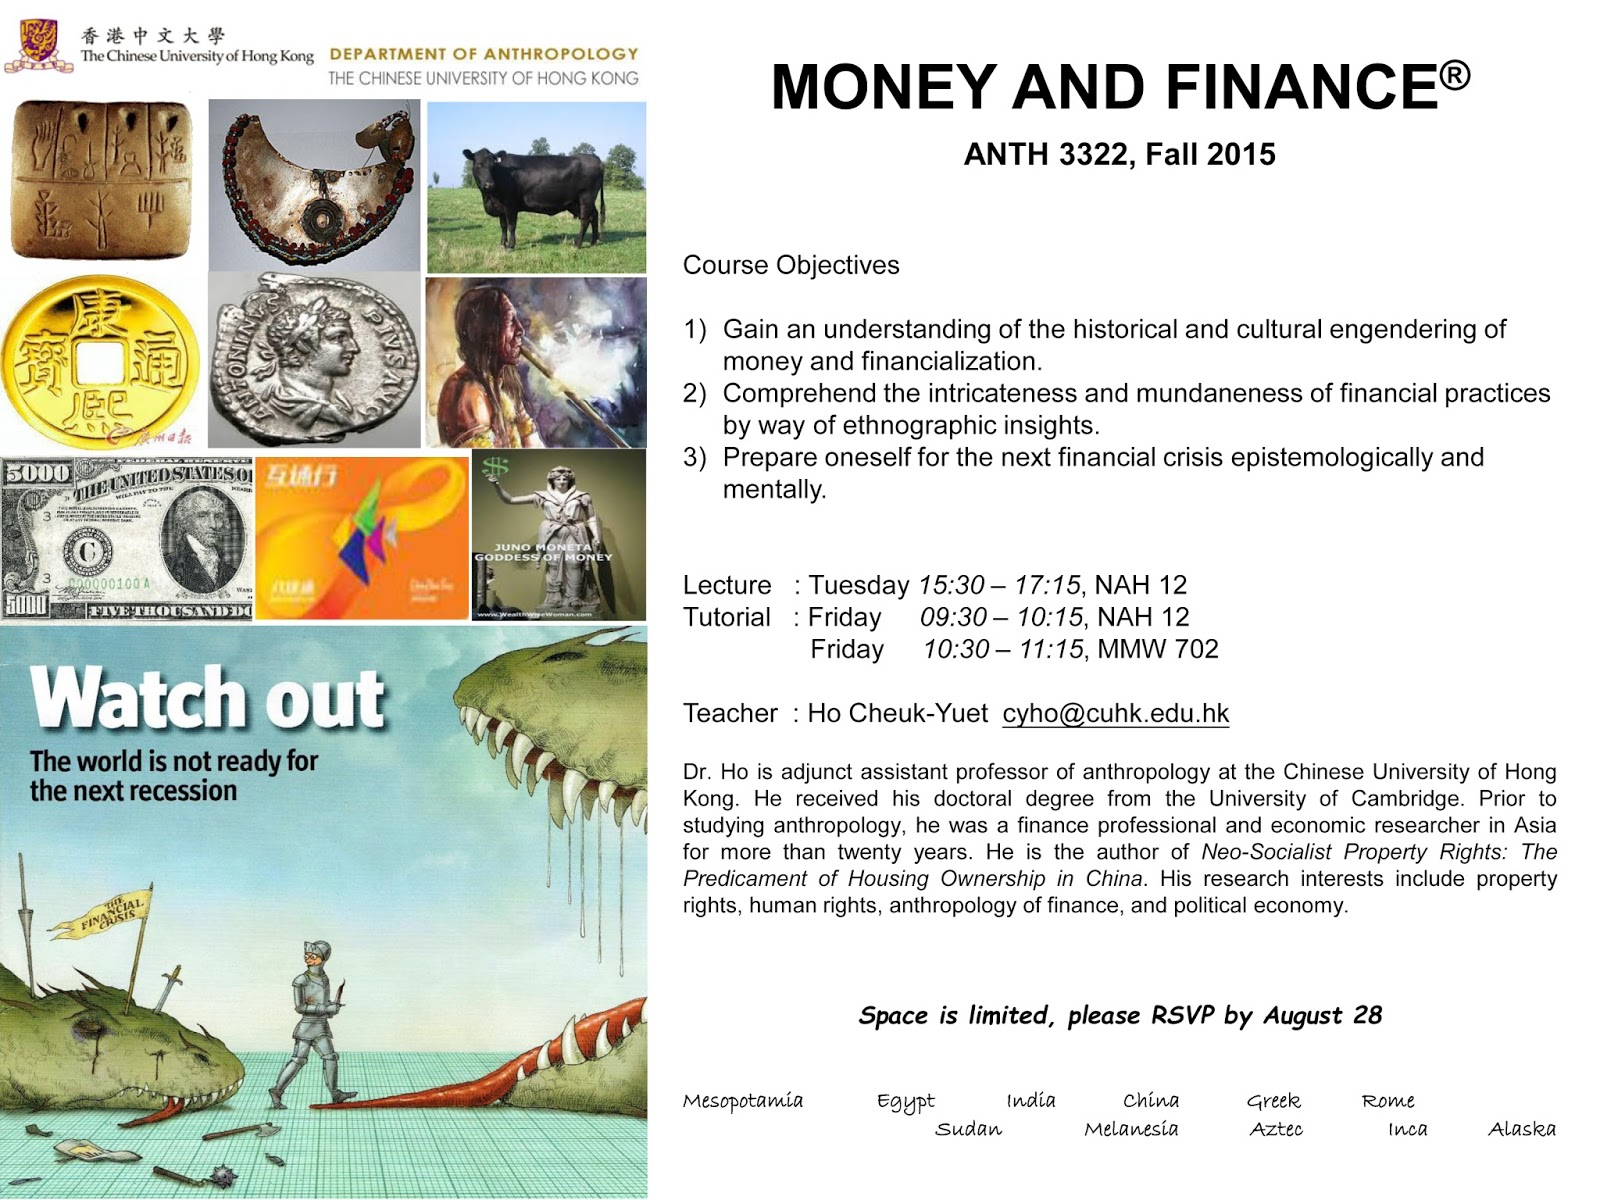 finance 310 syllabus spring 2015 1 Arec 408 agricultural finance  term offered: fall 2013 then spring only beginning in 2015  arec 310 syllabus: koontz.